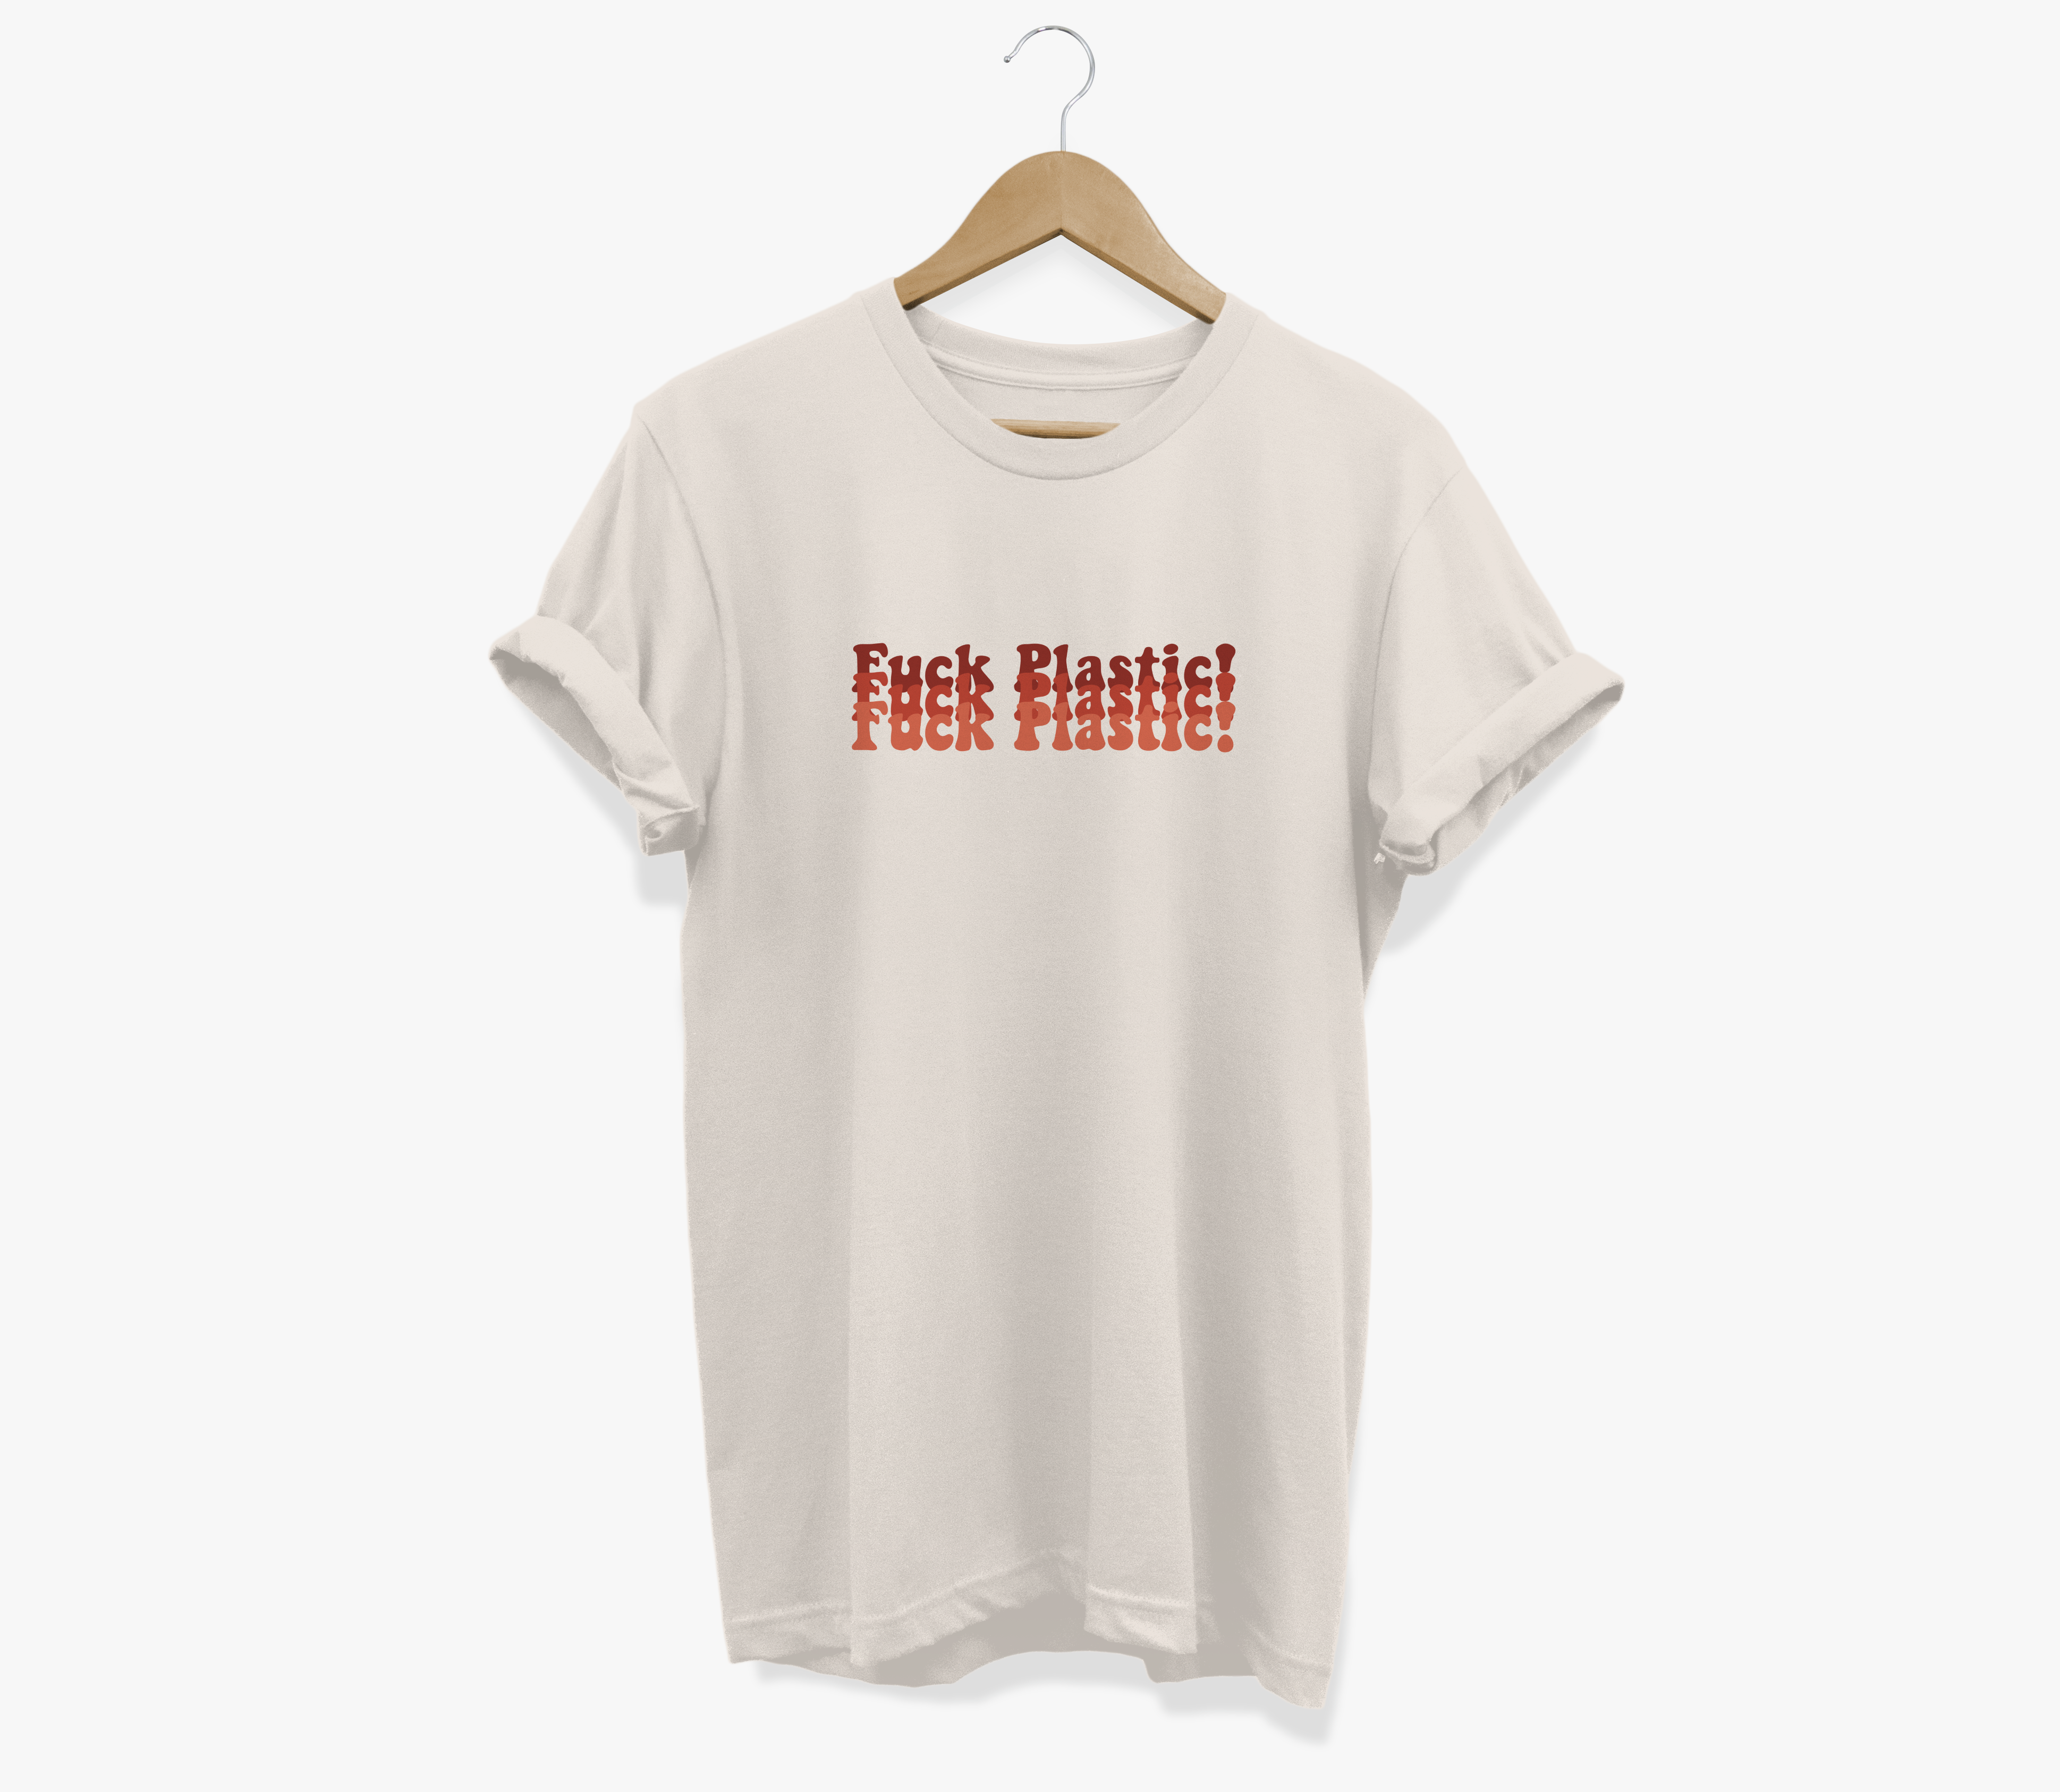 Fuck Plastic - 100% Cotton Tee